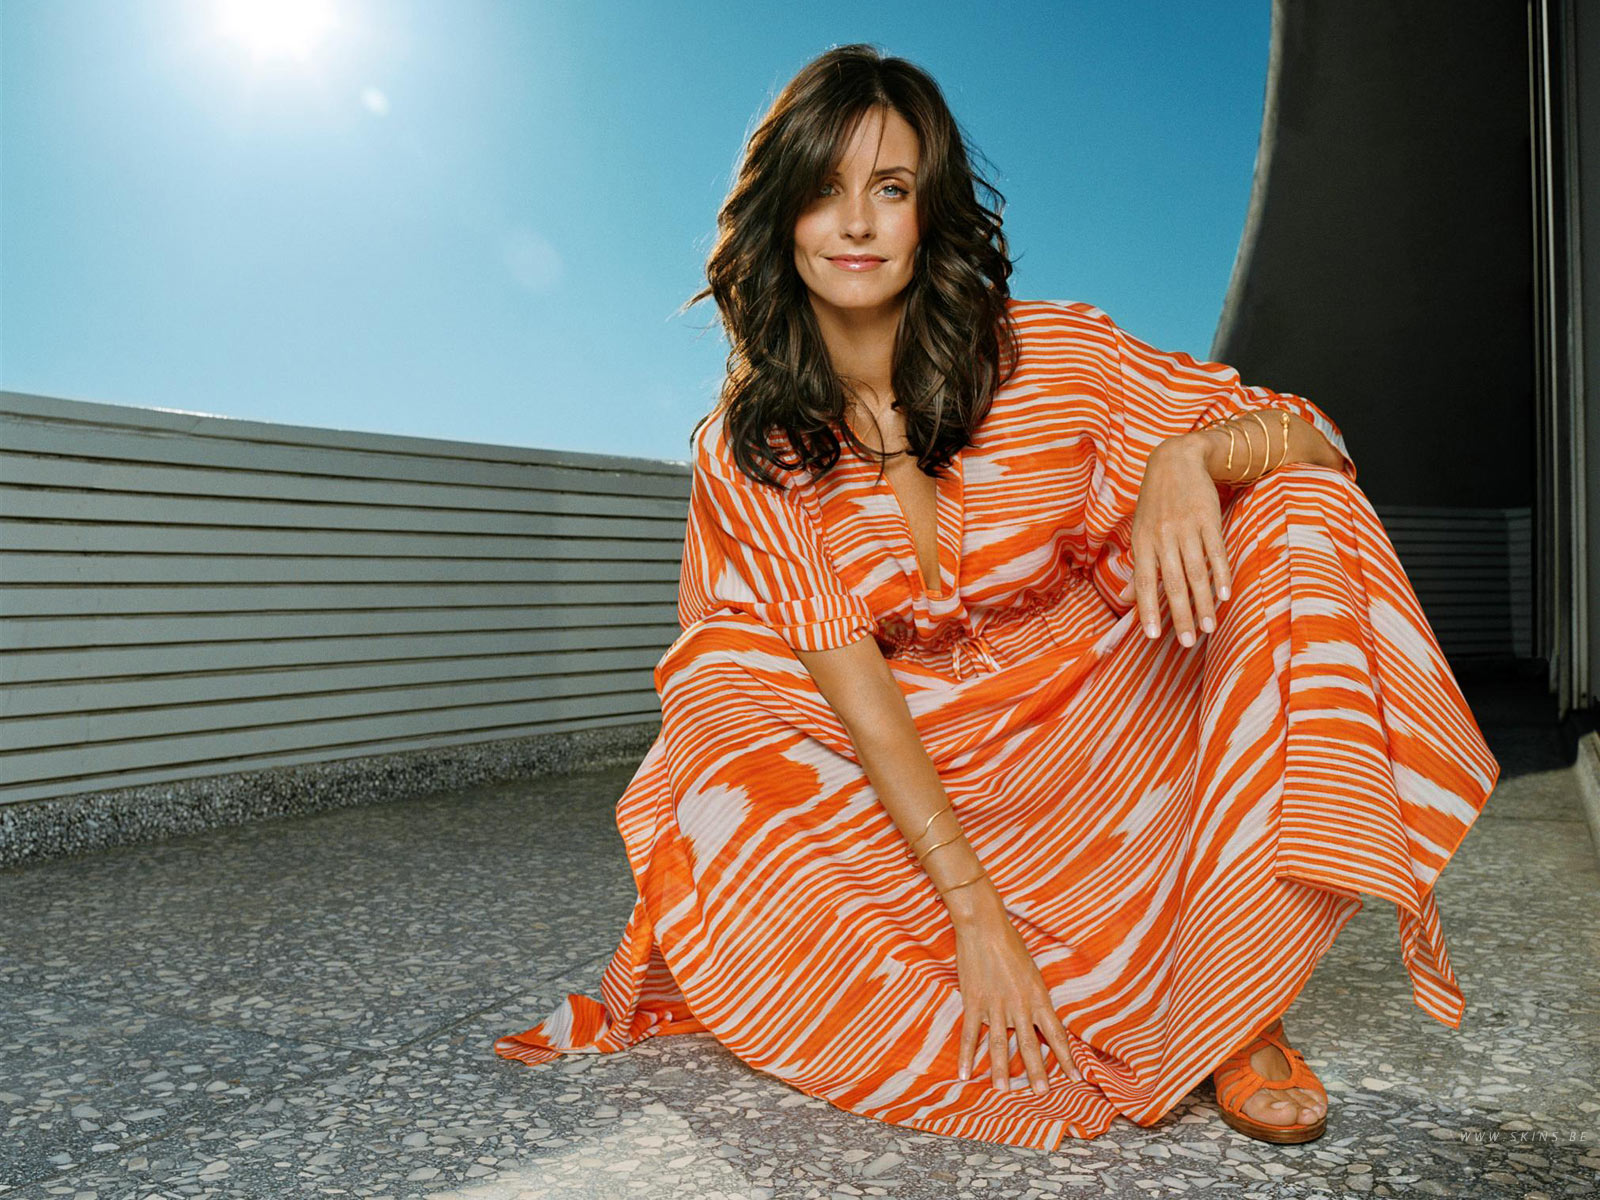 Beautiful Courteney Cox Hd Wallpapershigh Defination - All Hd Wallpapers-7652